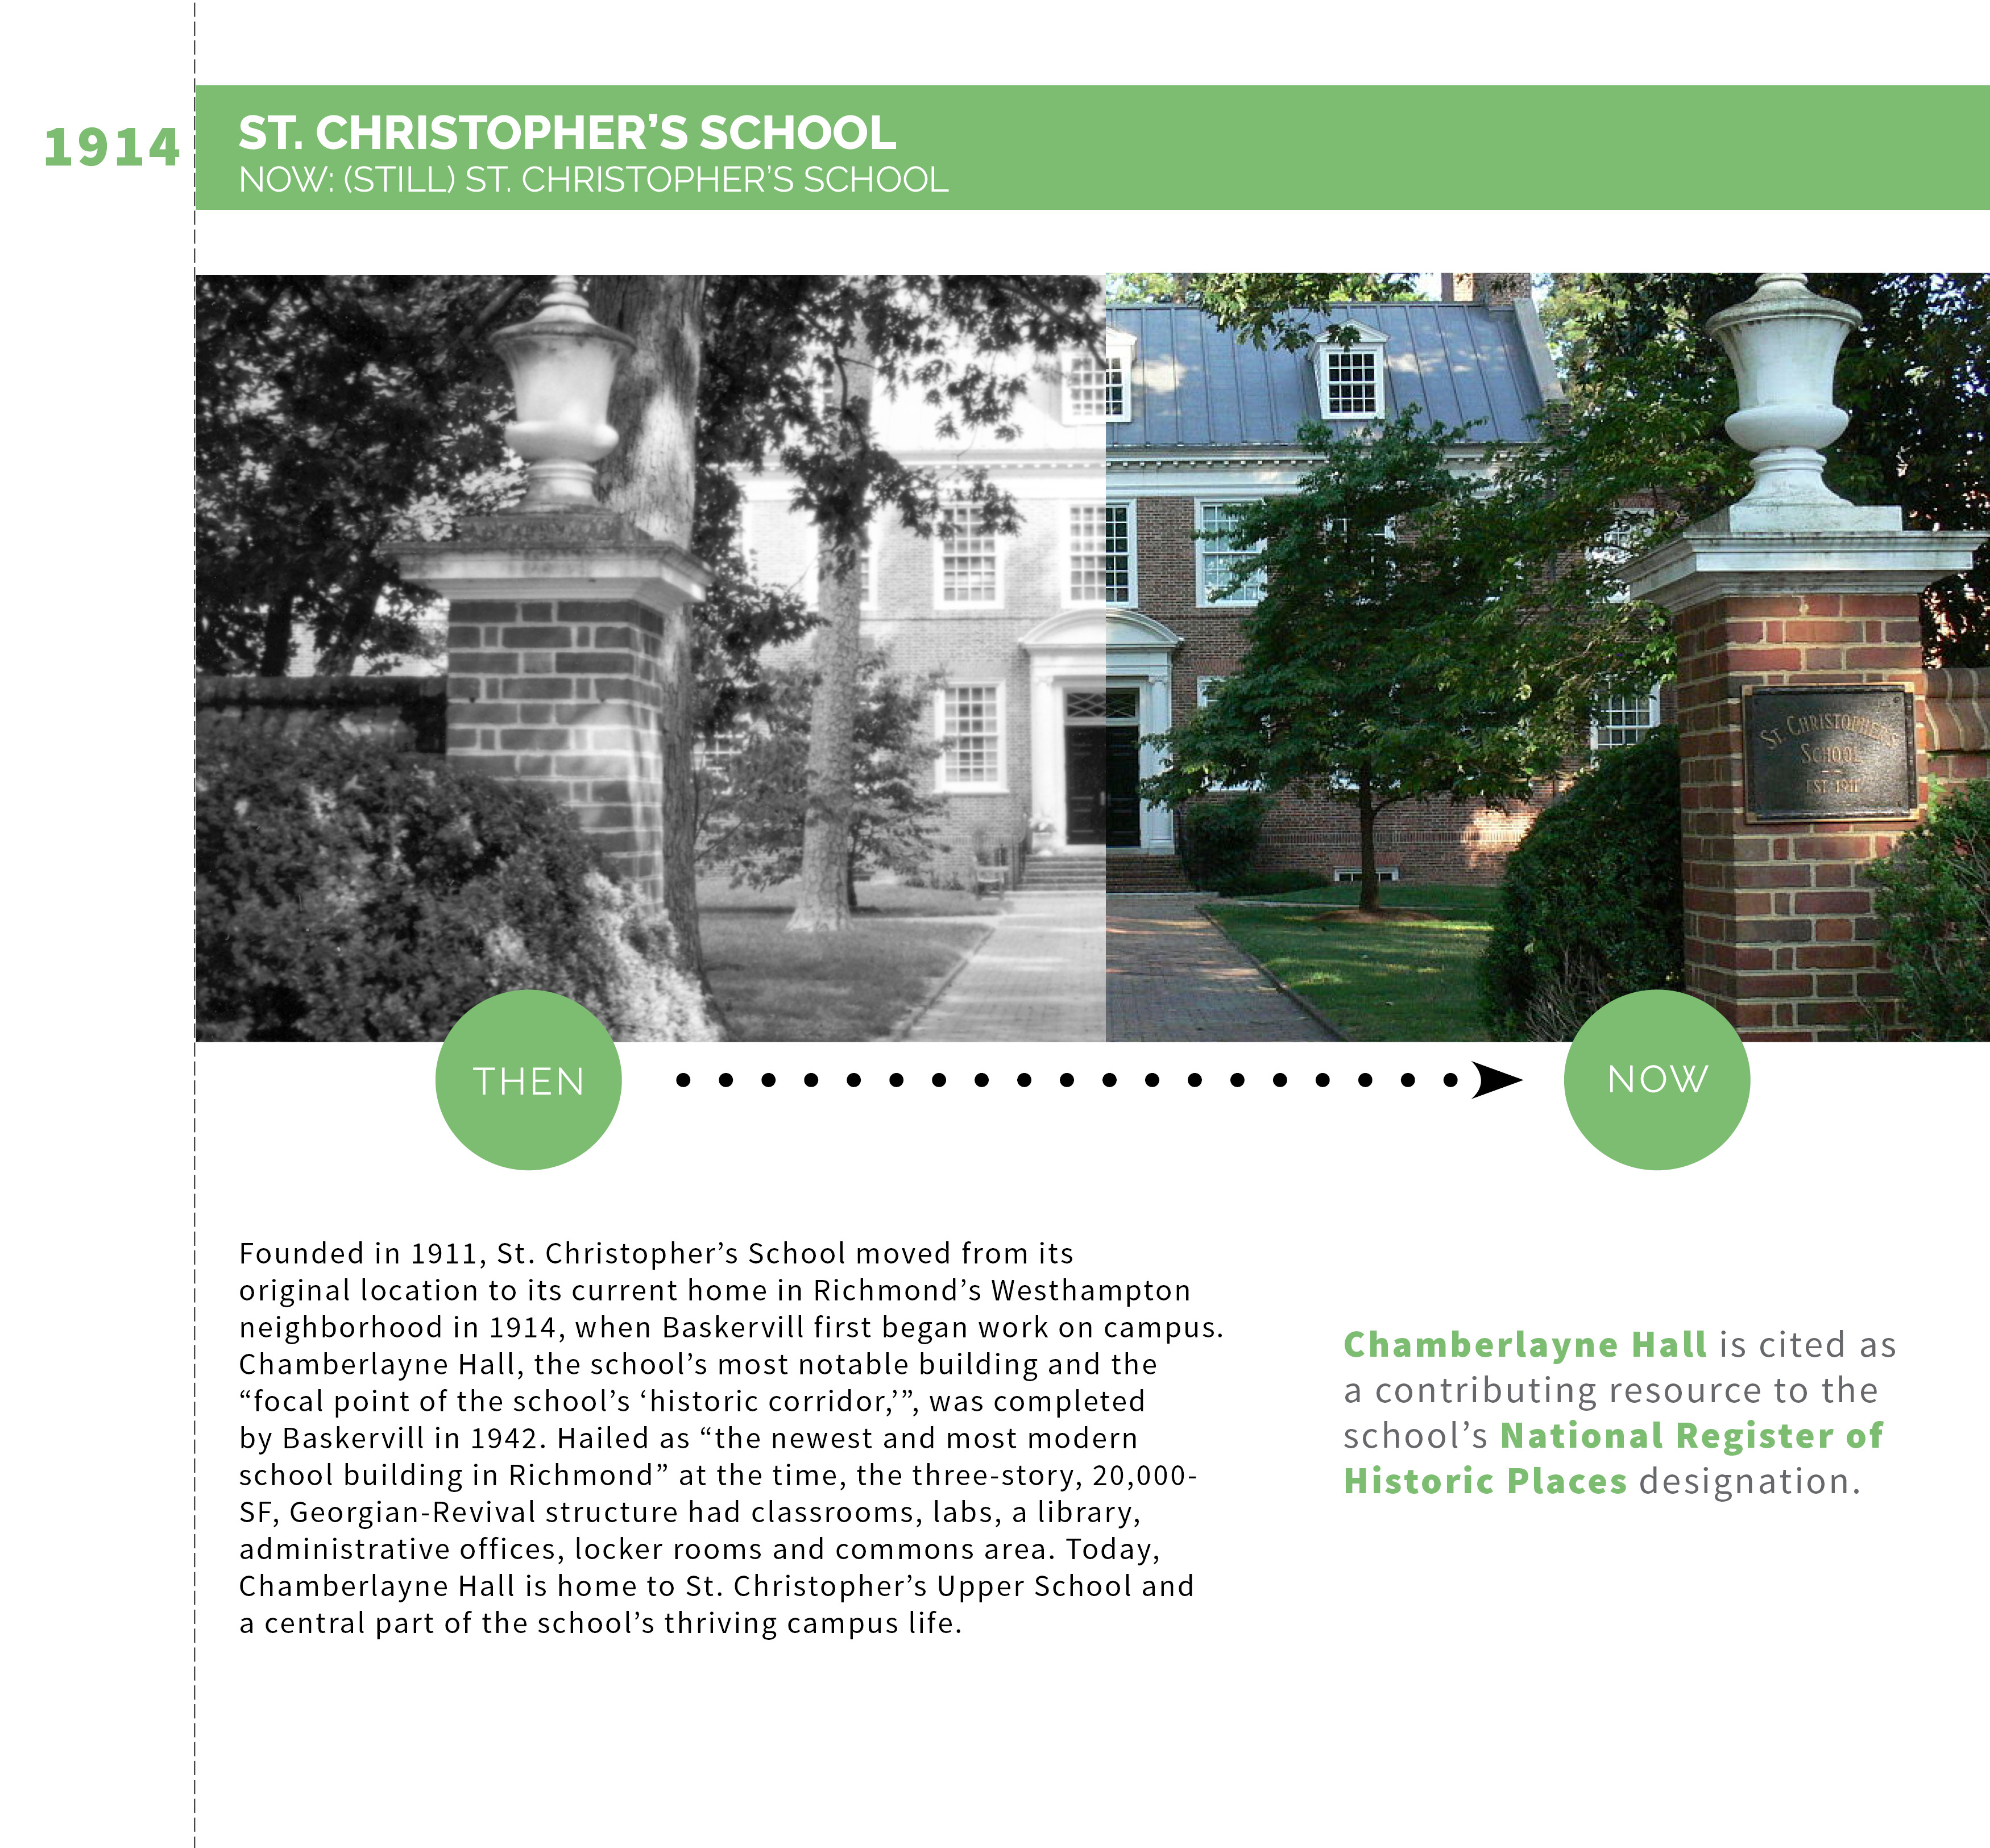 """Founded in 1911, St. Christopher's School moved from its original location to its current home in Richmond's Westhampton neighborhood in 1914, when Baskervill first began work on campus. Chamberlayne Hall, the school's most notable building and the """"focal point of the school's 'historic corridor,'"""", was completed by Baskervill in 1942. Hailed as """"the newest and most modern school building in Richmond"""" at the time, the three-story, 20,000-SF, Georgian-Revival structure had classrooms, labs, a library, administrative offices, locker rooms and commons area. Today, Chamberlayne Hall is home to St. Christopher's Upper School and a central part of the school's thriving campus life.Chamberlayne Hall is cited as a contributing resource to the school's National Register of Historic Places designation."""